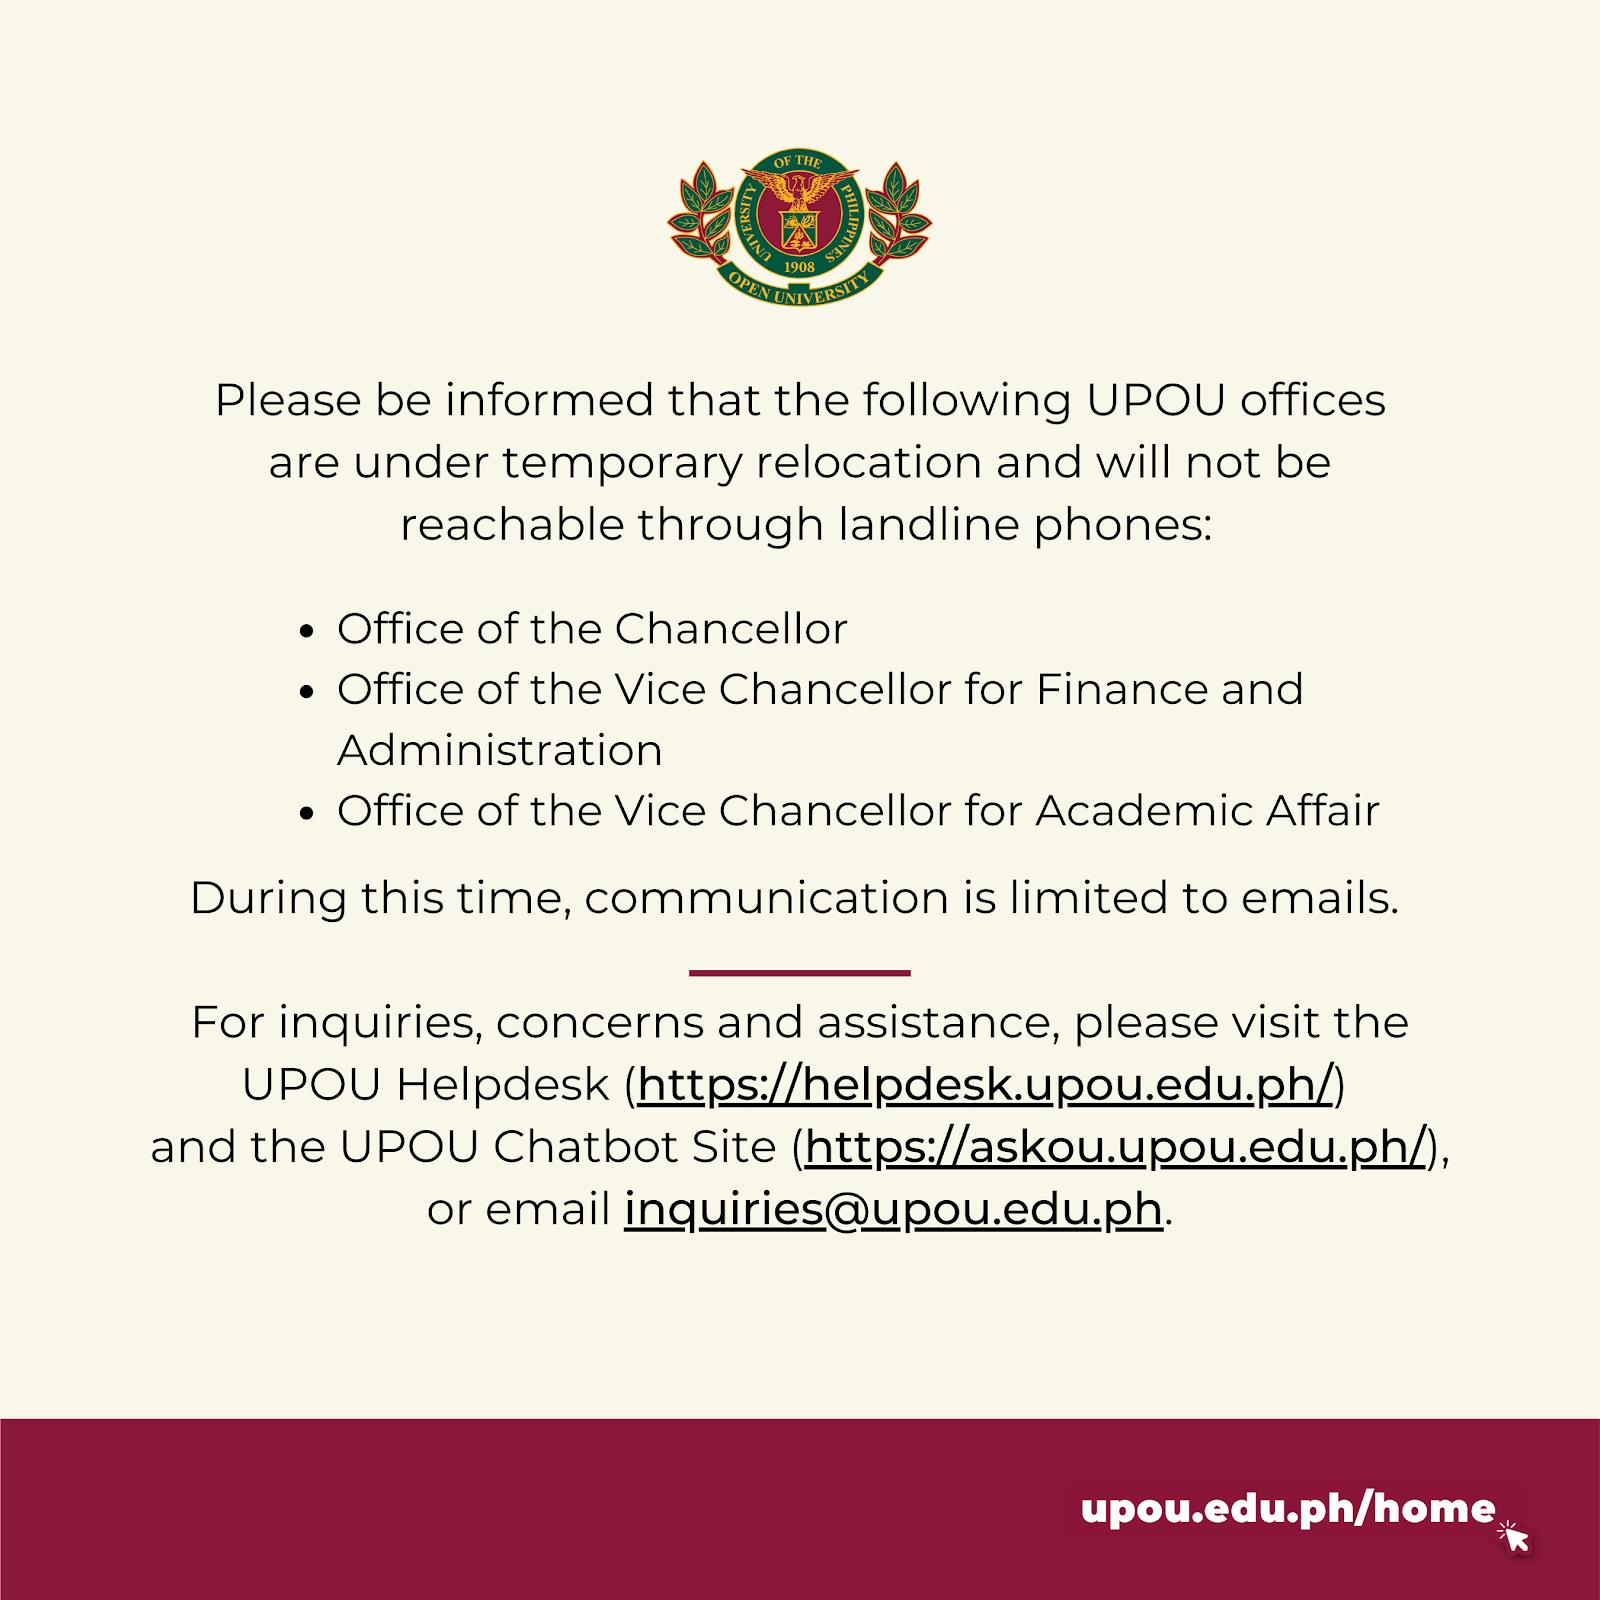 Temporary Relocation of UPOU Offices